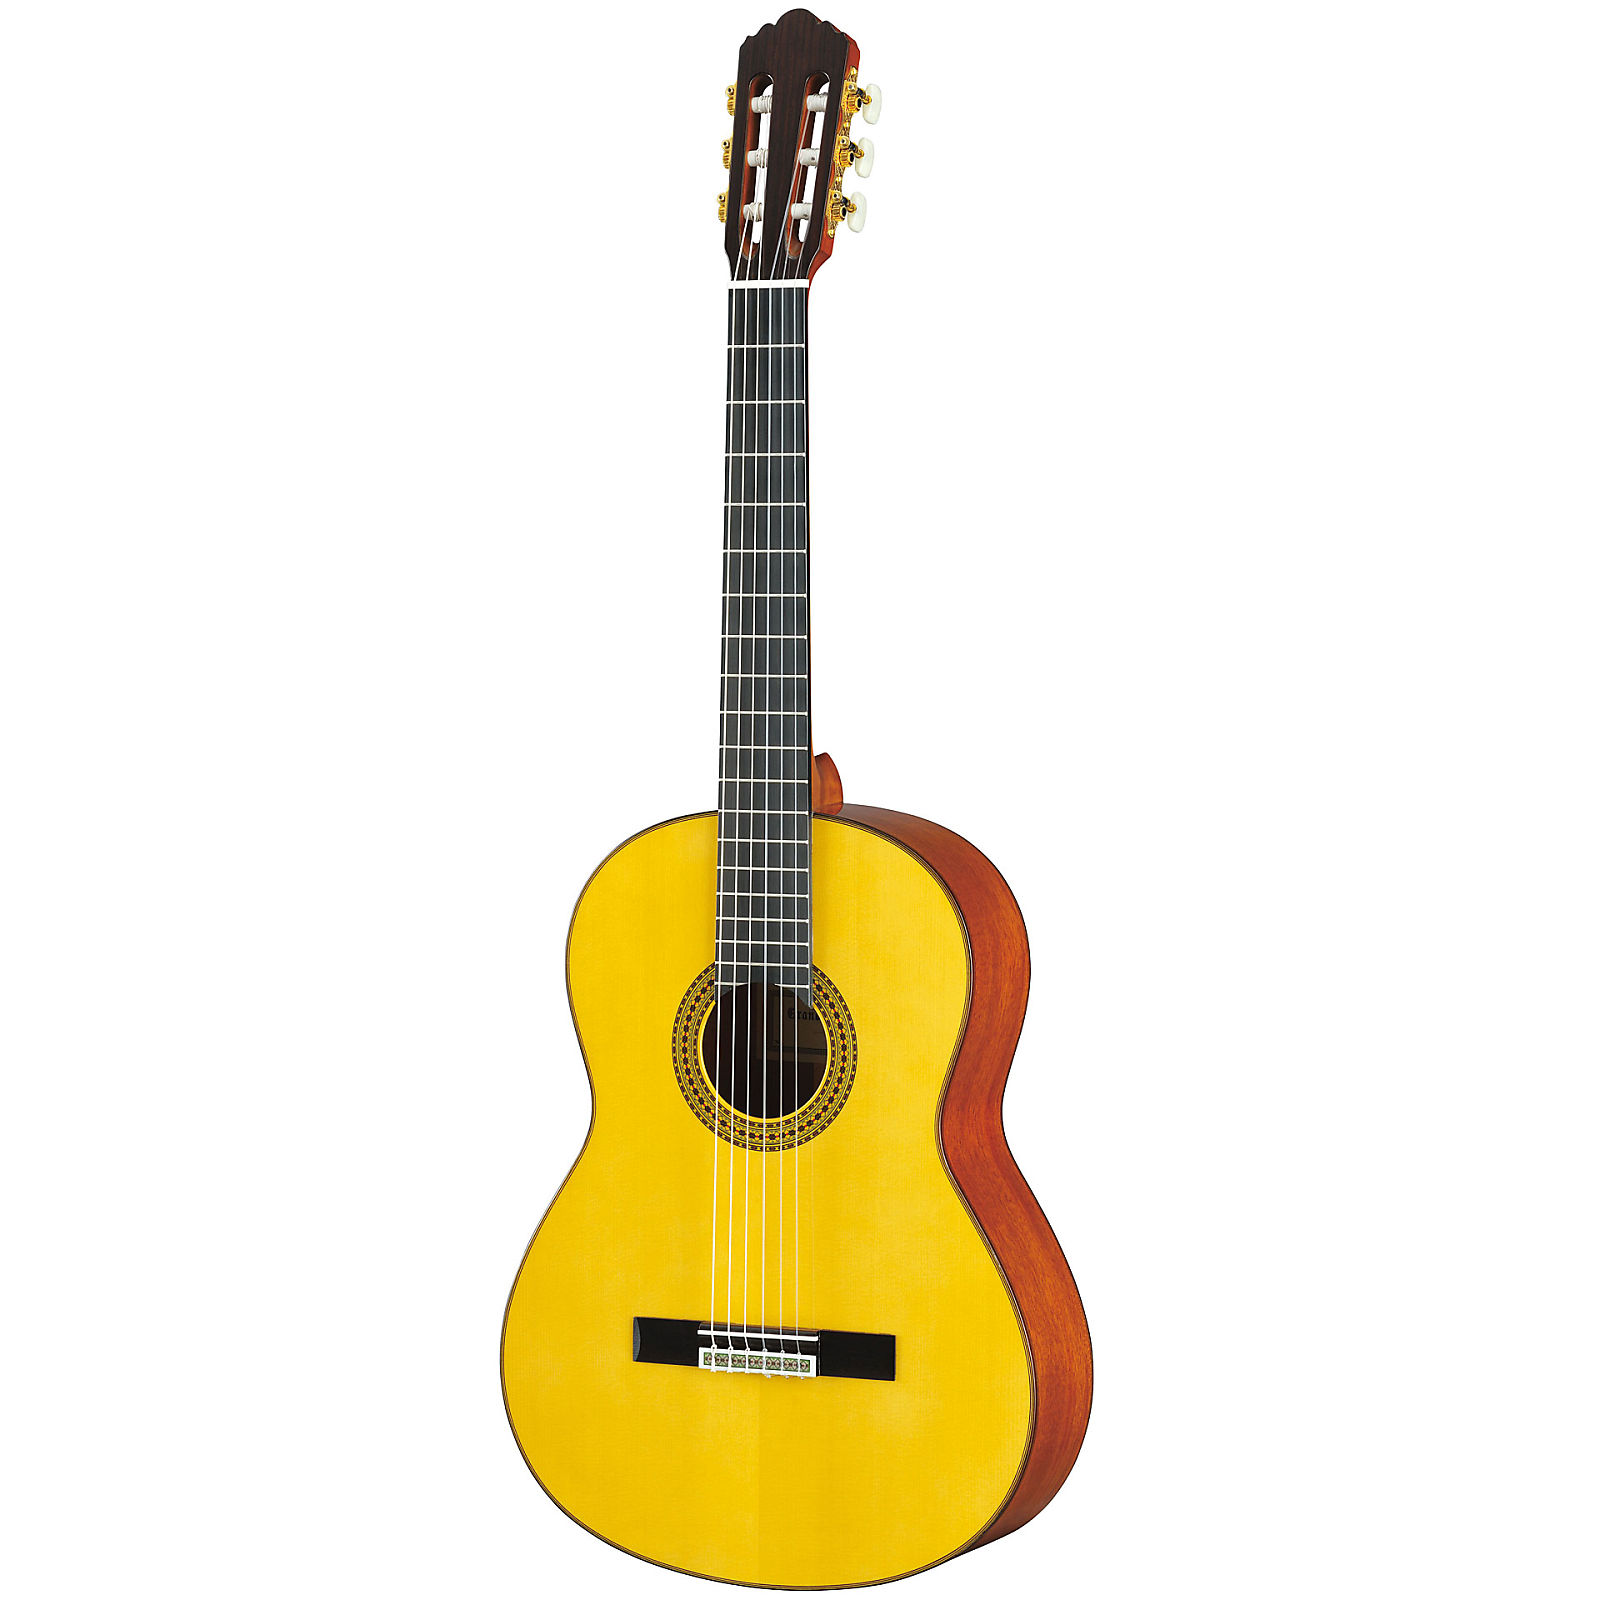 Yamaha gc12s handcrafted classical guitar natural reverb for Yamaha gc12s review